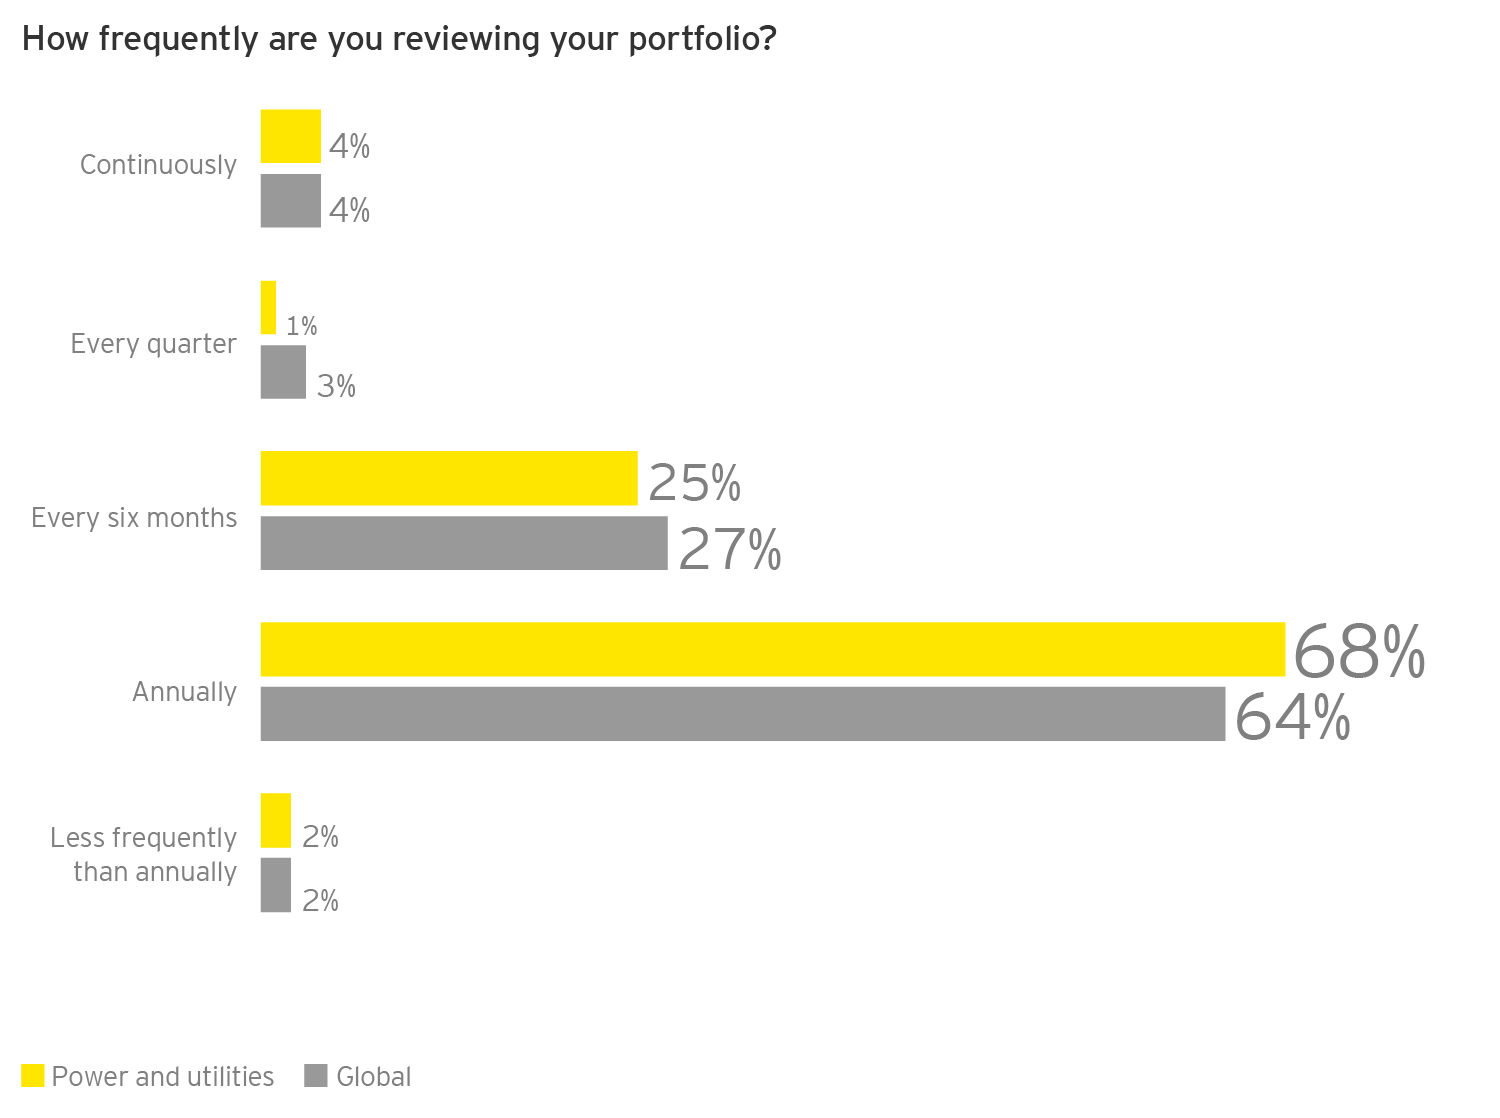 EY - Q: How frequently are you reviewing your portfolio?